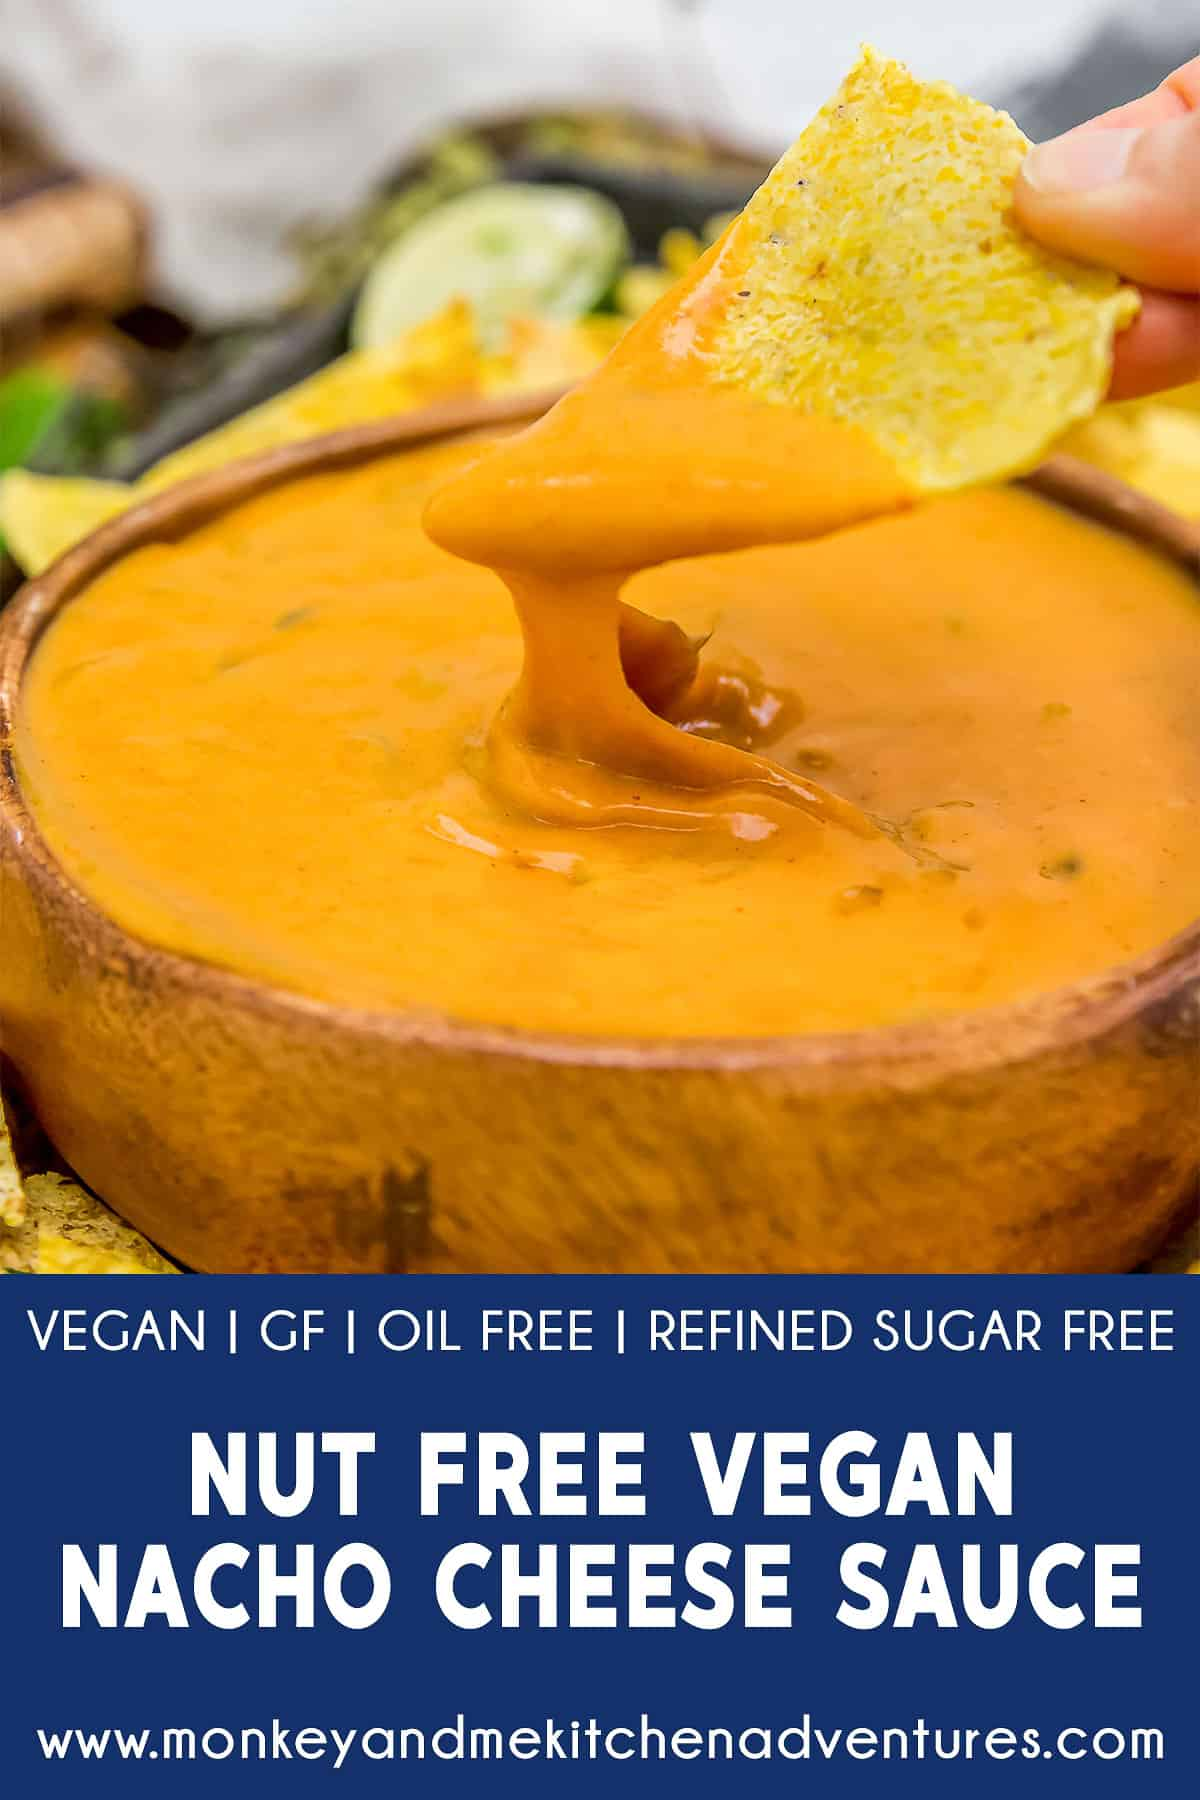 Nut Free Vegan Nacho Cheese Sauce with text description